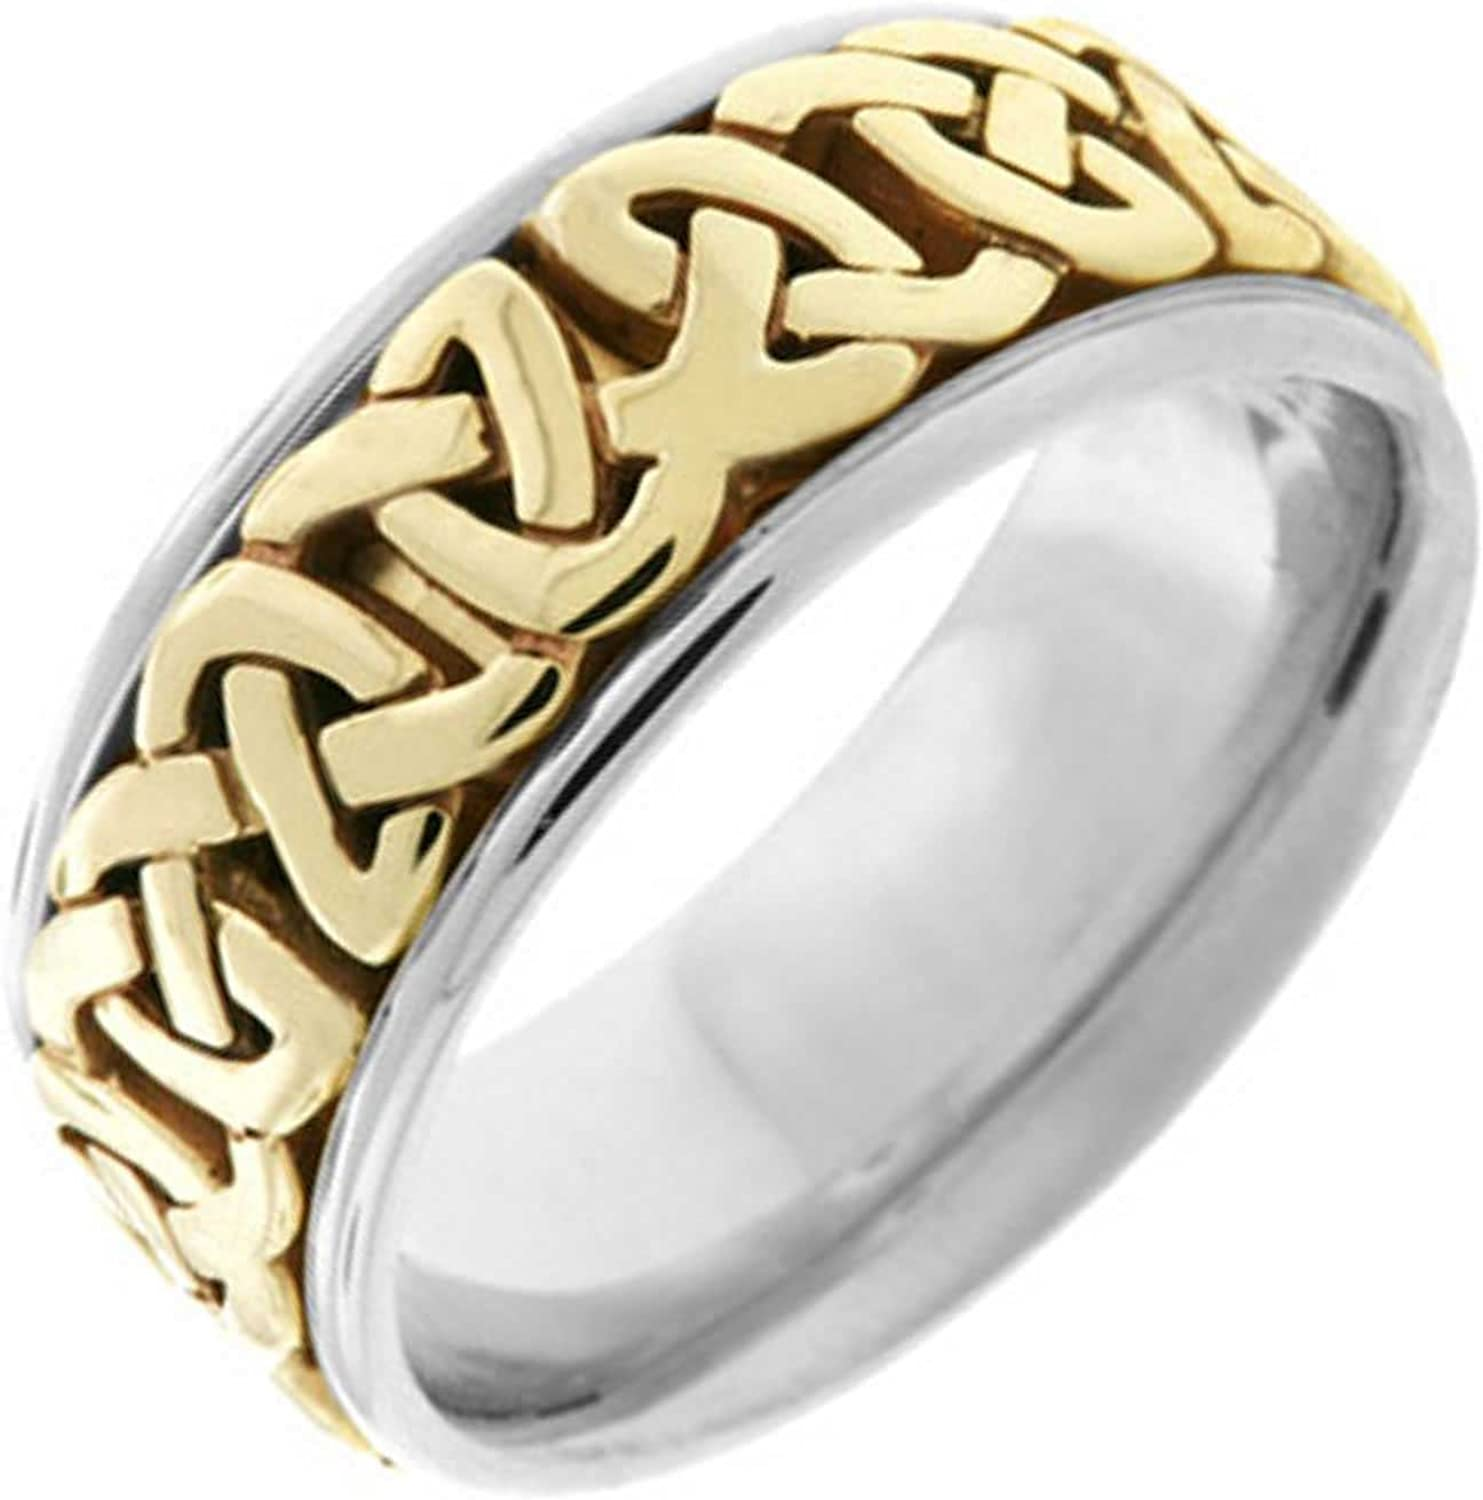 14K Two Tone (White and Yellow) Gold Celtic Love Knot Men's Comfort Fit Wedding Band (8.5mm)